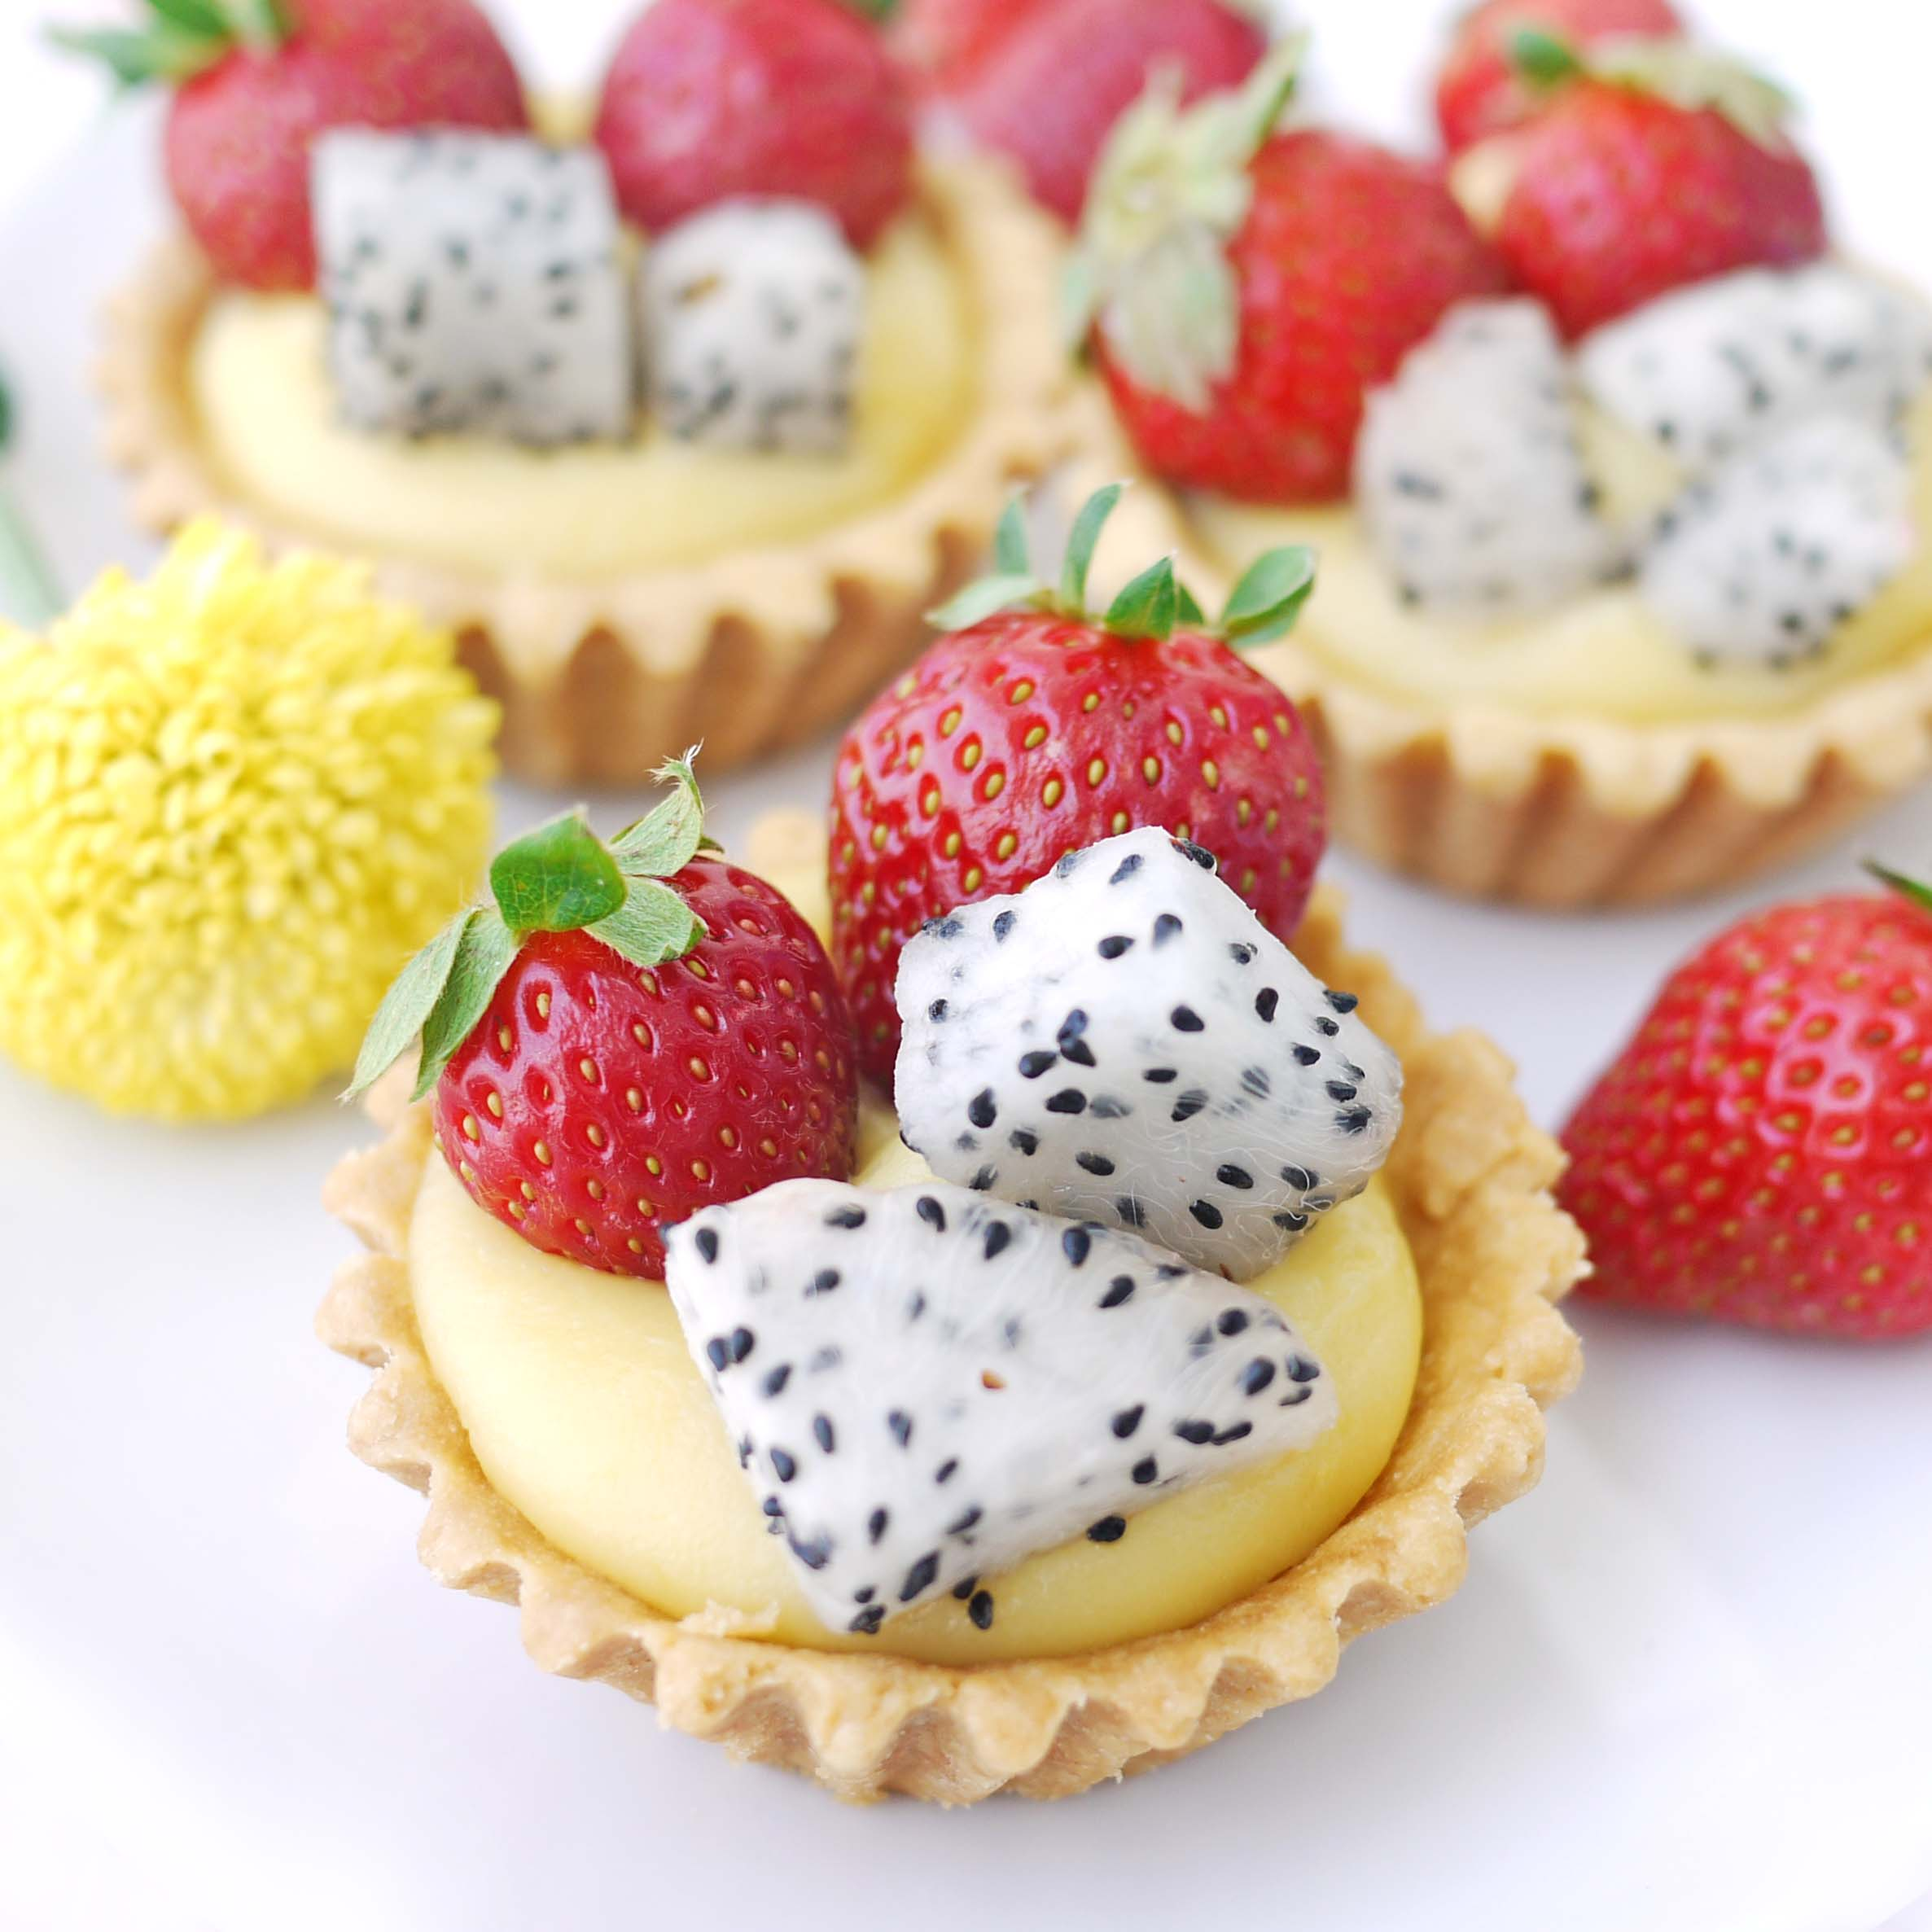 palm fruit healthy fruit tart